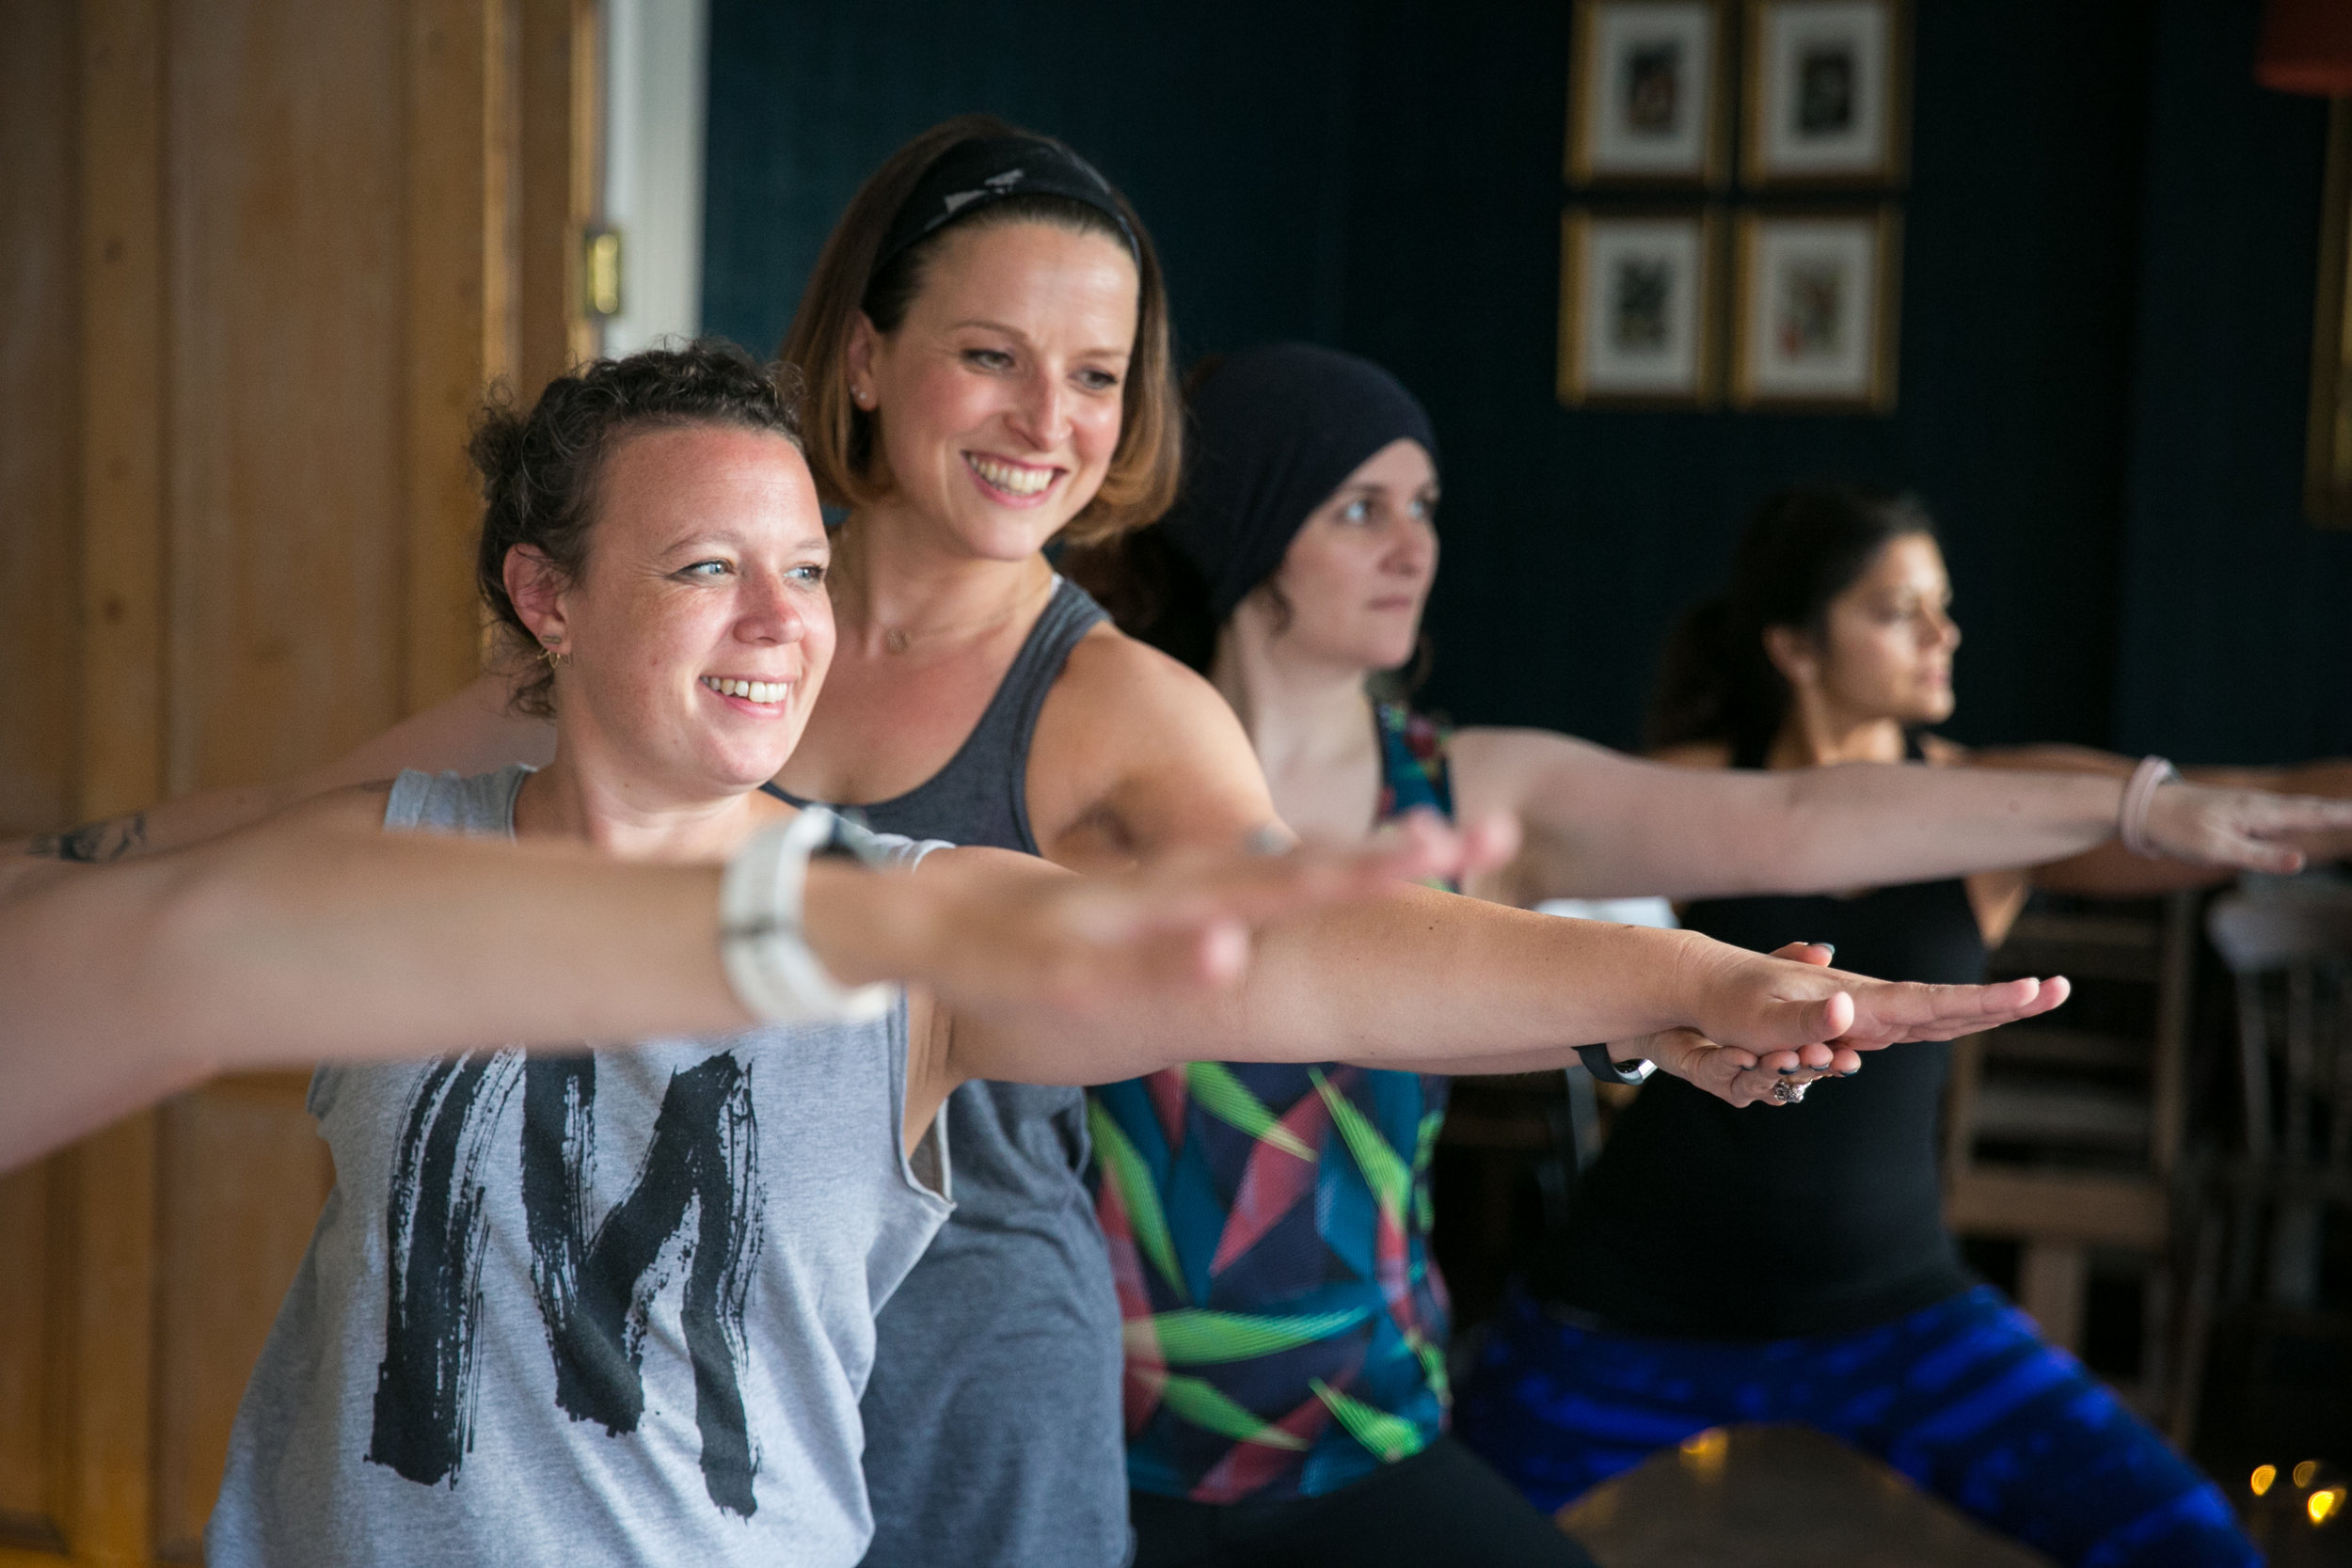 Look! We're smiling! That's how much fun yoga is!